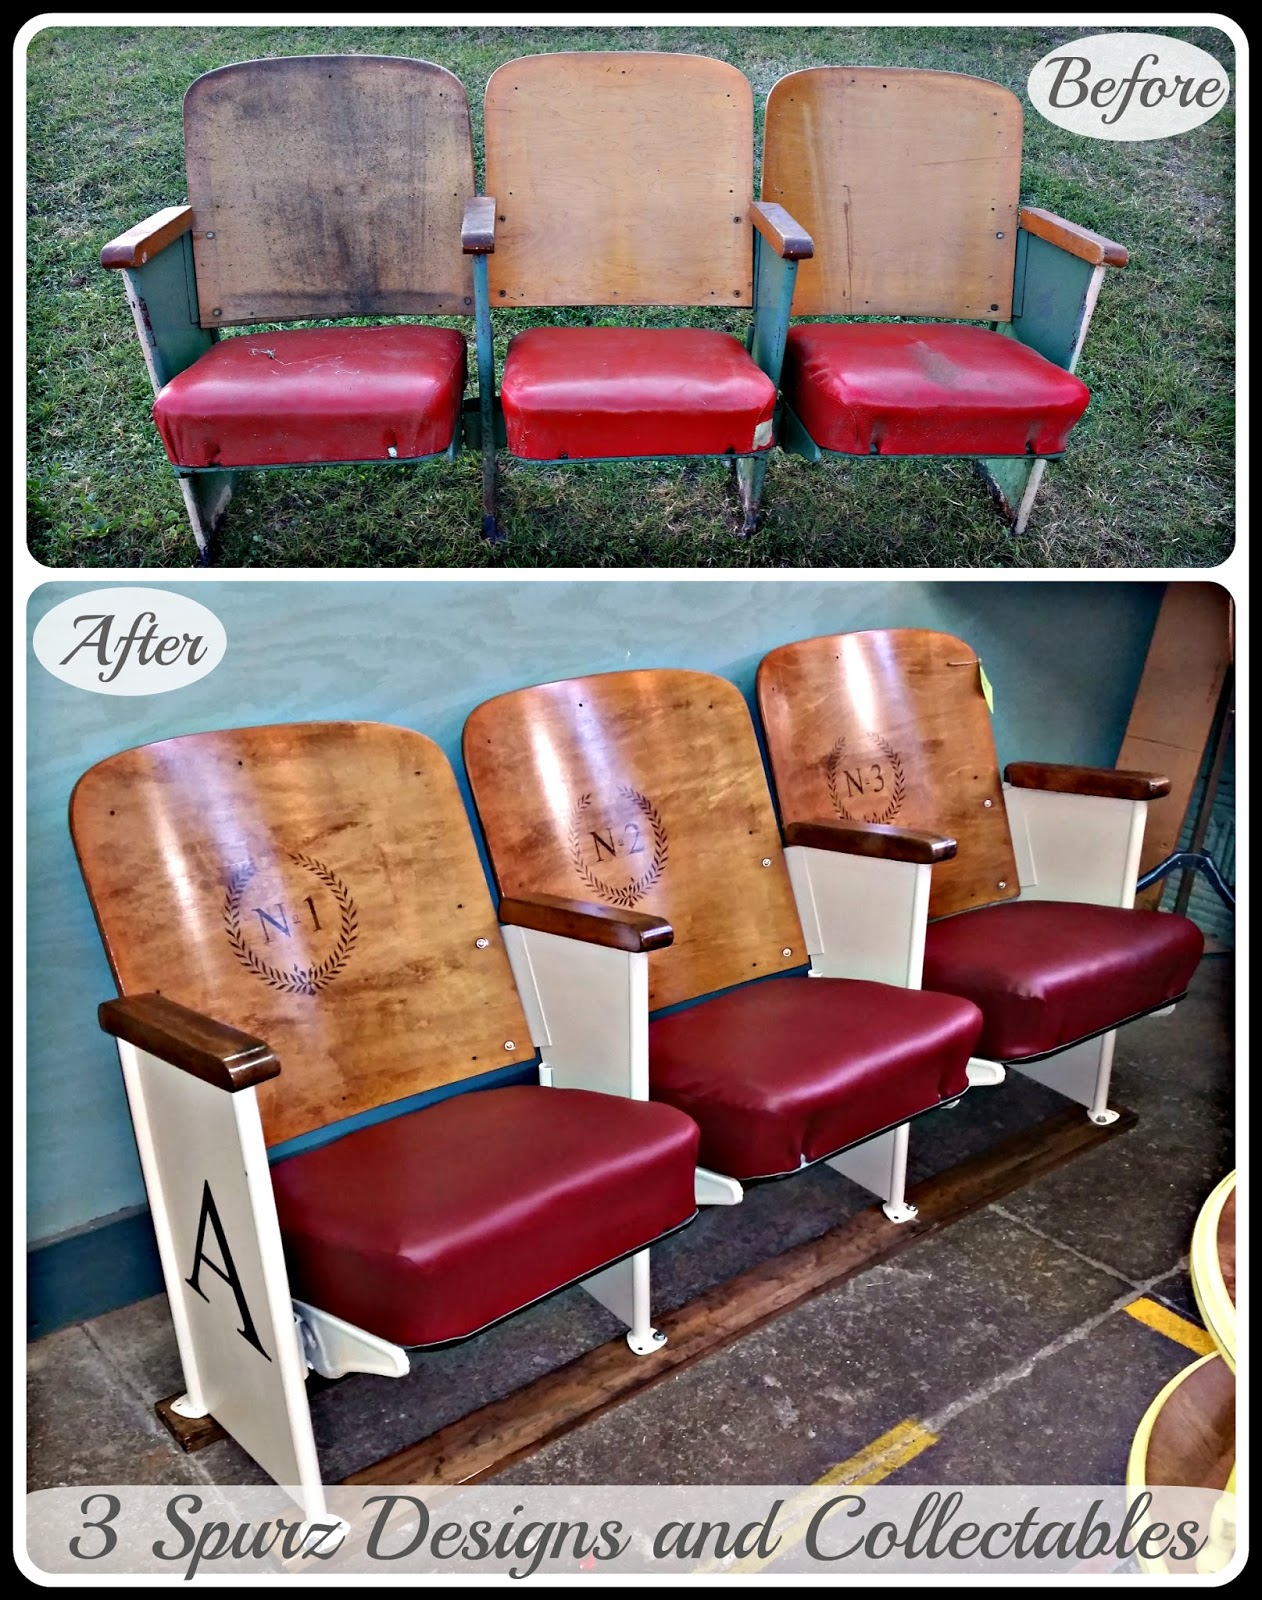 Theater Chair Covers Meditation Ikea 3 Spurz Dandc Repurposed Refurbished Creations Old